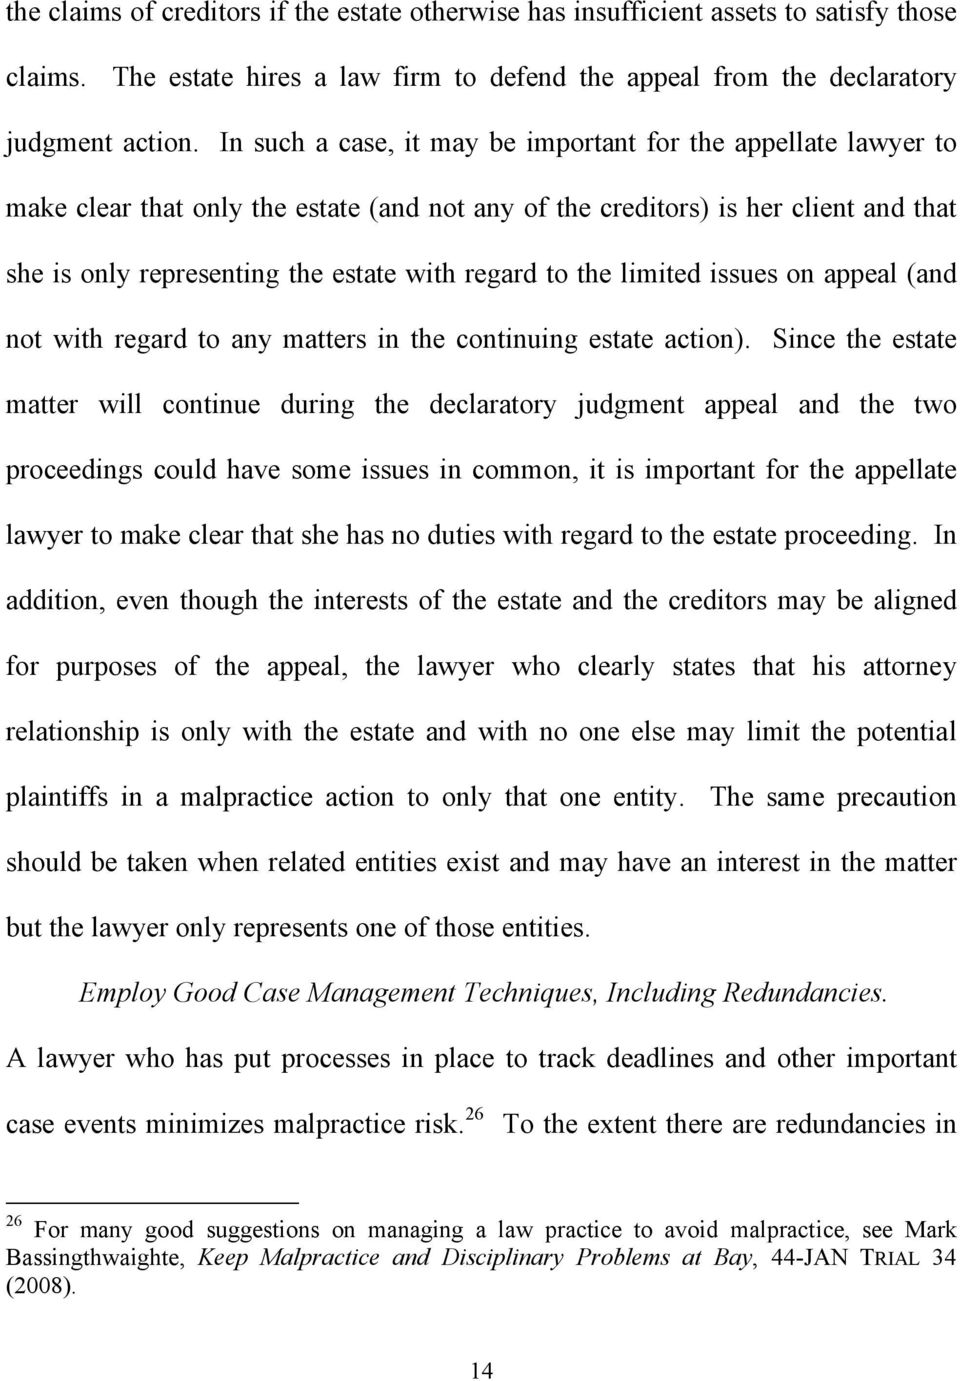 to the limited issues on appeal (and not with regard to any matters in the continuing estate action).